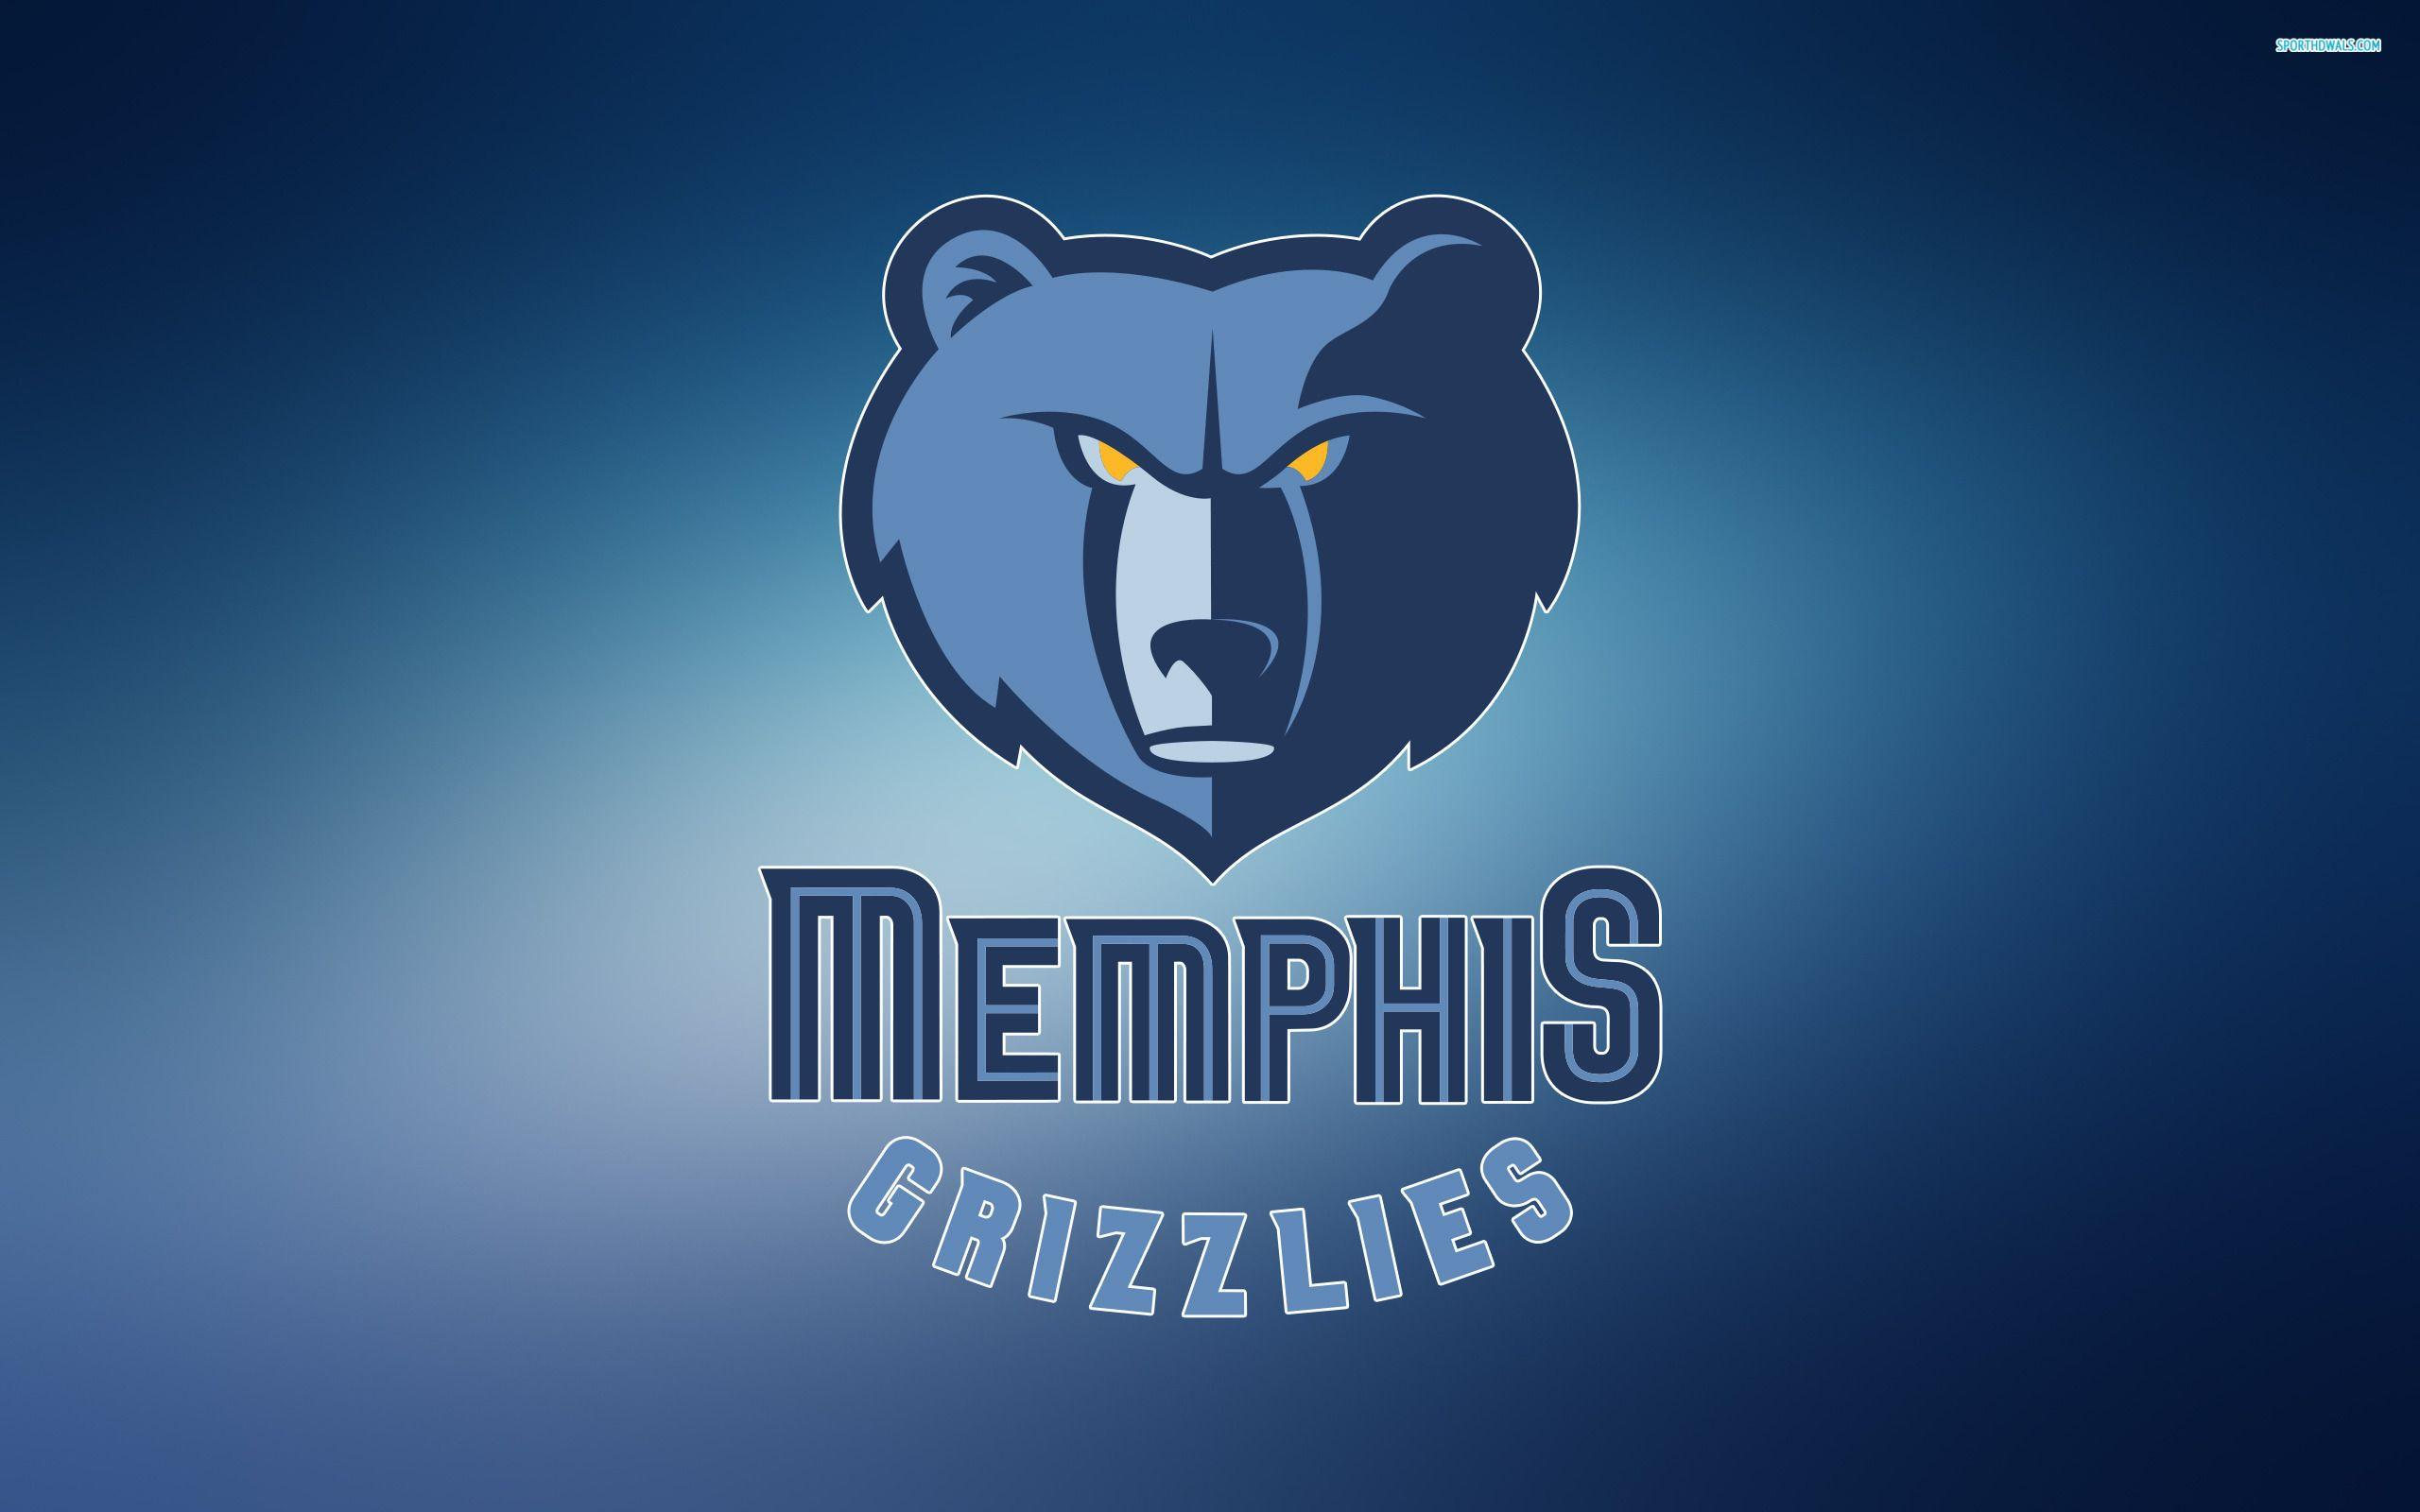 Memphis Grizzlies iPhone Wallpaper - wallpaper.